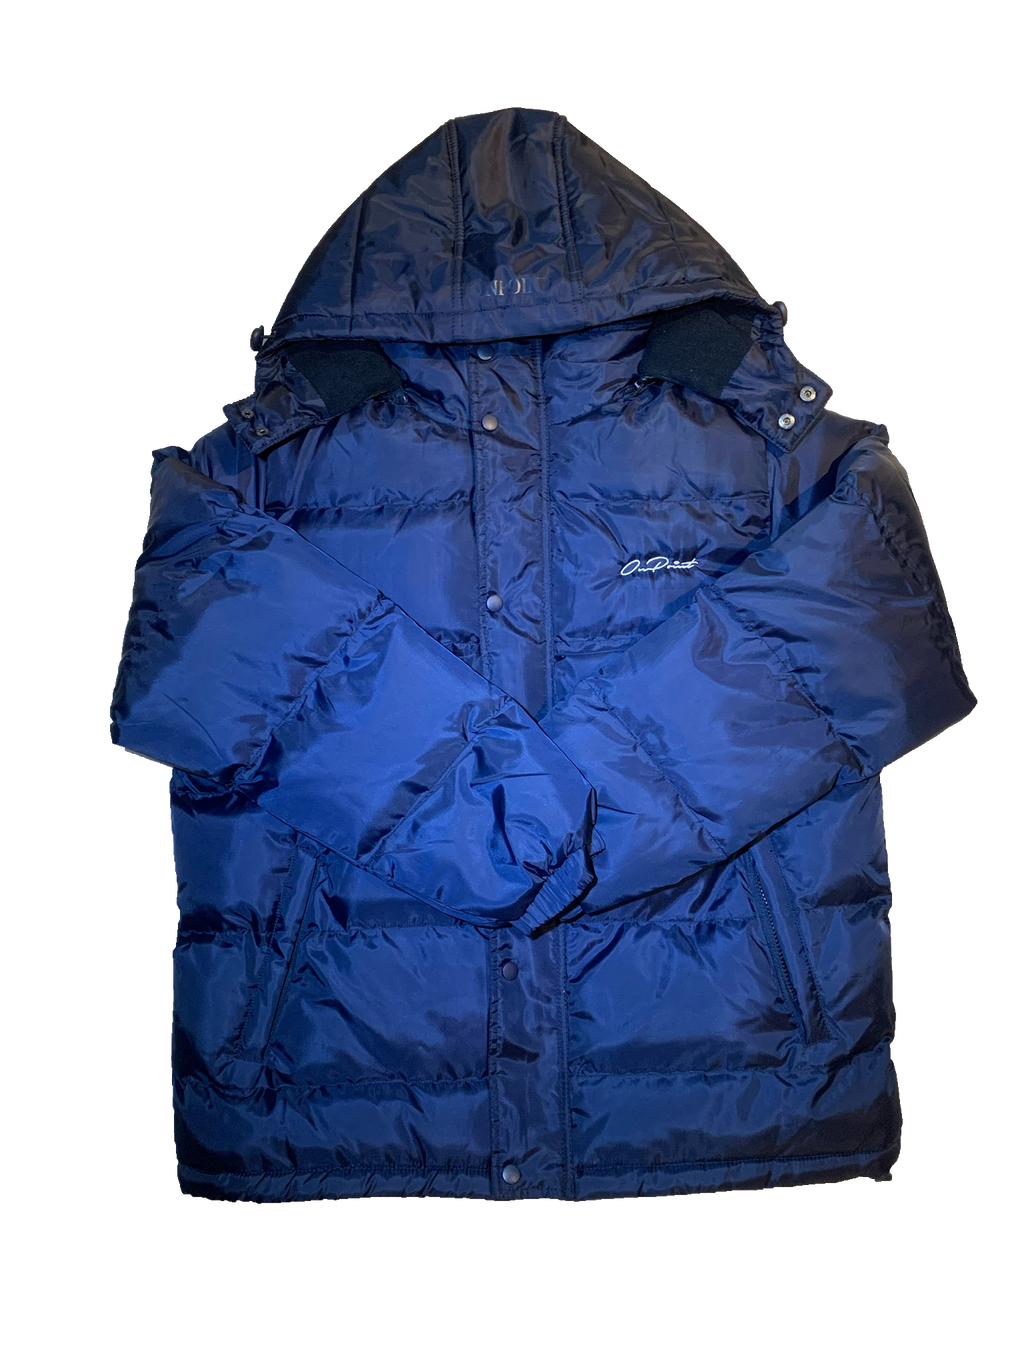 ONPOINT® - 19 Puffa Jacket in Navy